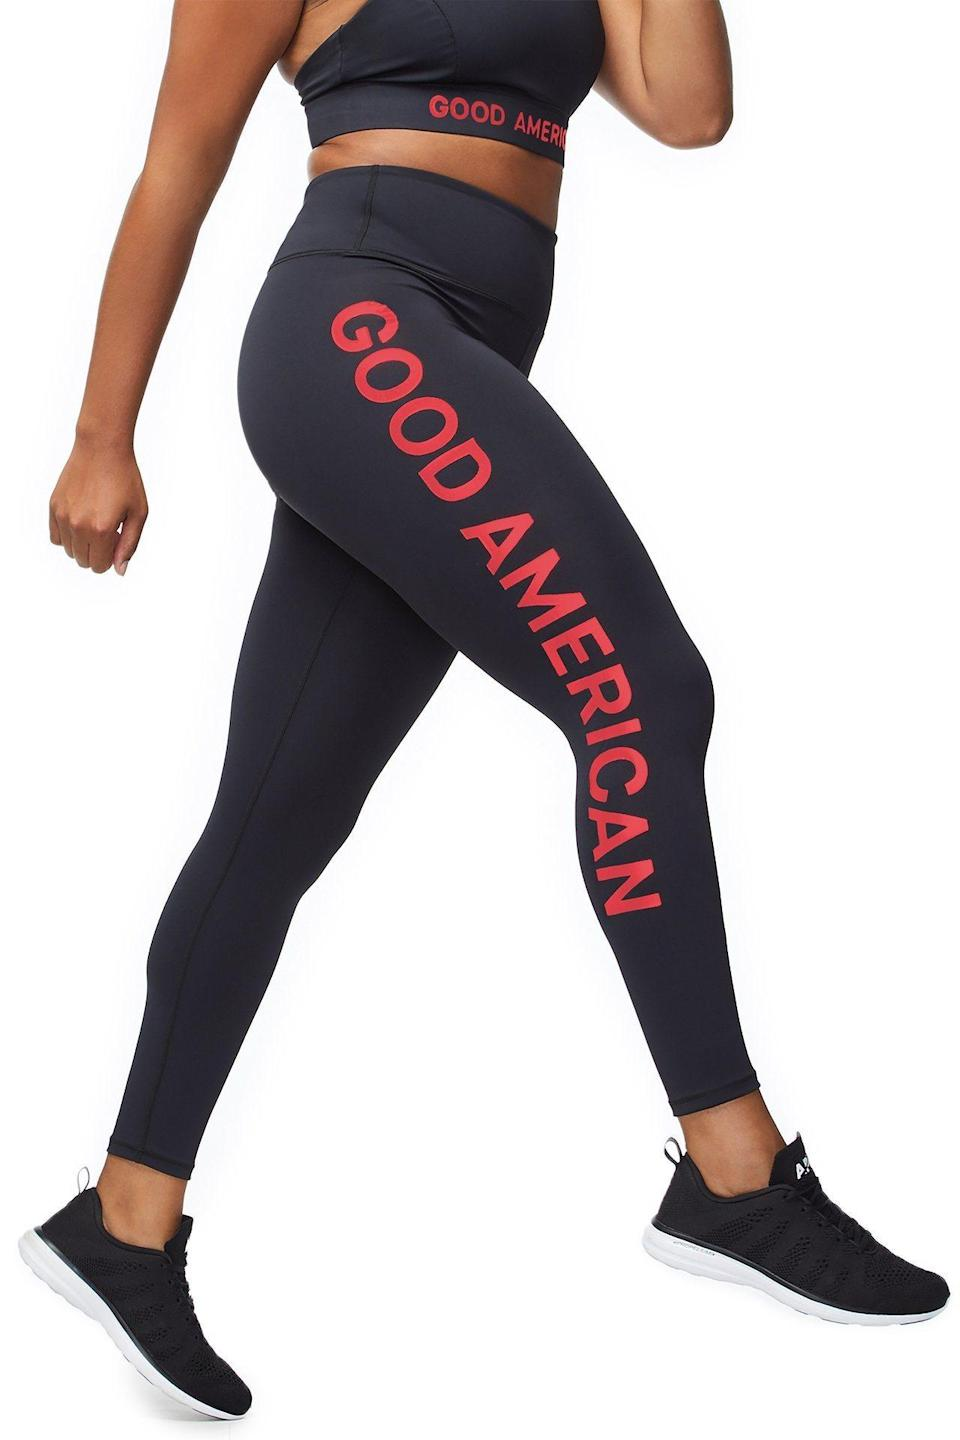 "<p>I am all about supportive, high-waisted leggings like these. I also love the reflective logo down the side of these black-and-red stunners.<br><a href=""https://fave.co/2ArVweA"" rel=""nofollow noopener"" target=""_blank"" data-ylk=""slk:Shop it:"" class=""link rapid-noclick-resp""><strong>Shop it:</strong> </a>The Core Power Legging, $99 (take 25% off with code EXTRA25), <a href=""https://fave.co/2ArVweA"" rel=""nofollow noopener"" target=""_blank"" data-ylk=""slk:goodamerican.com"" class=""link rapid-noclick-resp"">goodamerican.com</a> </p>"